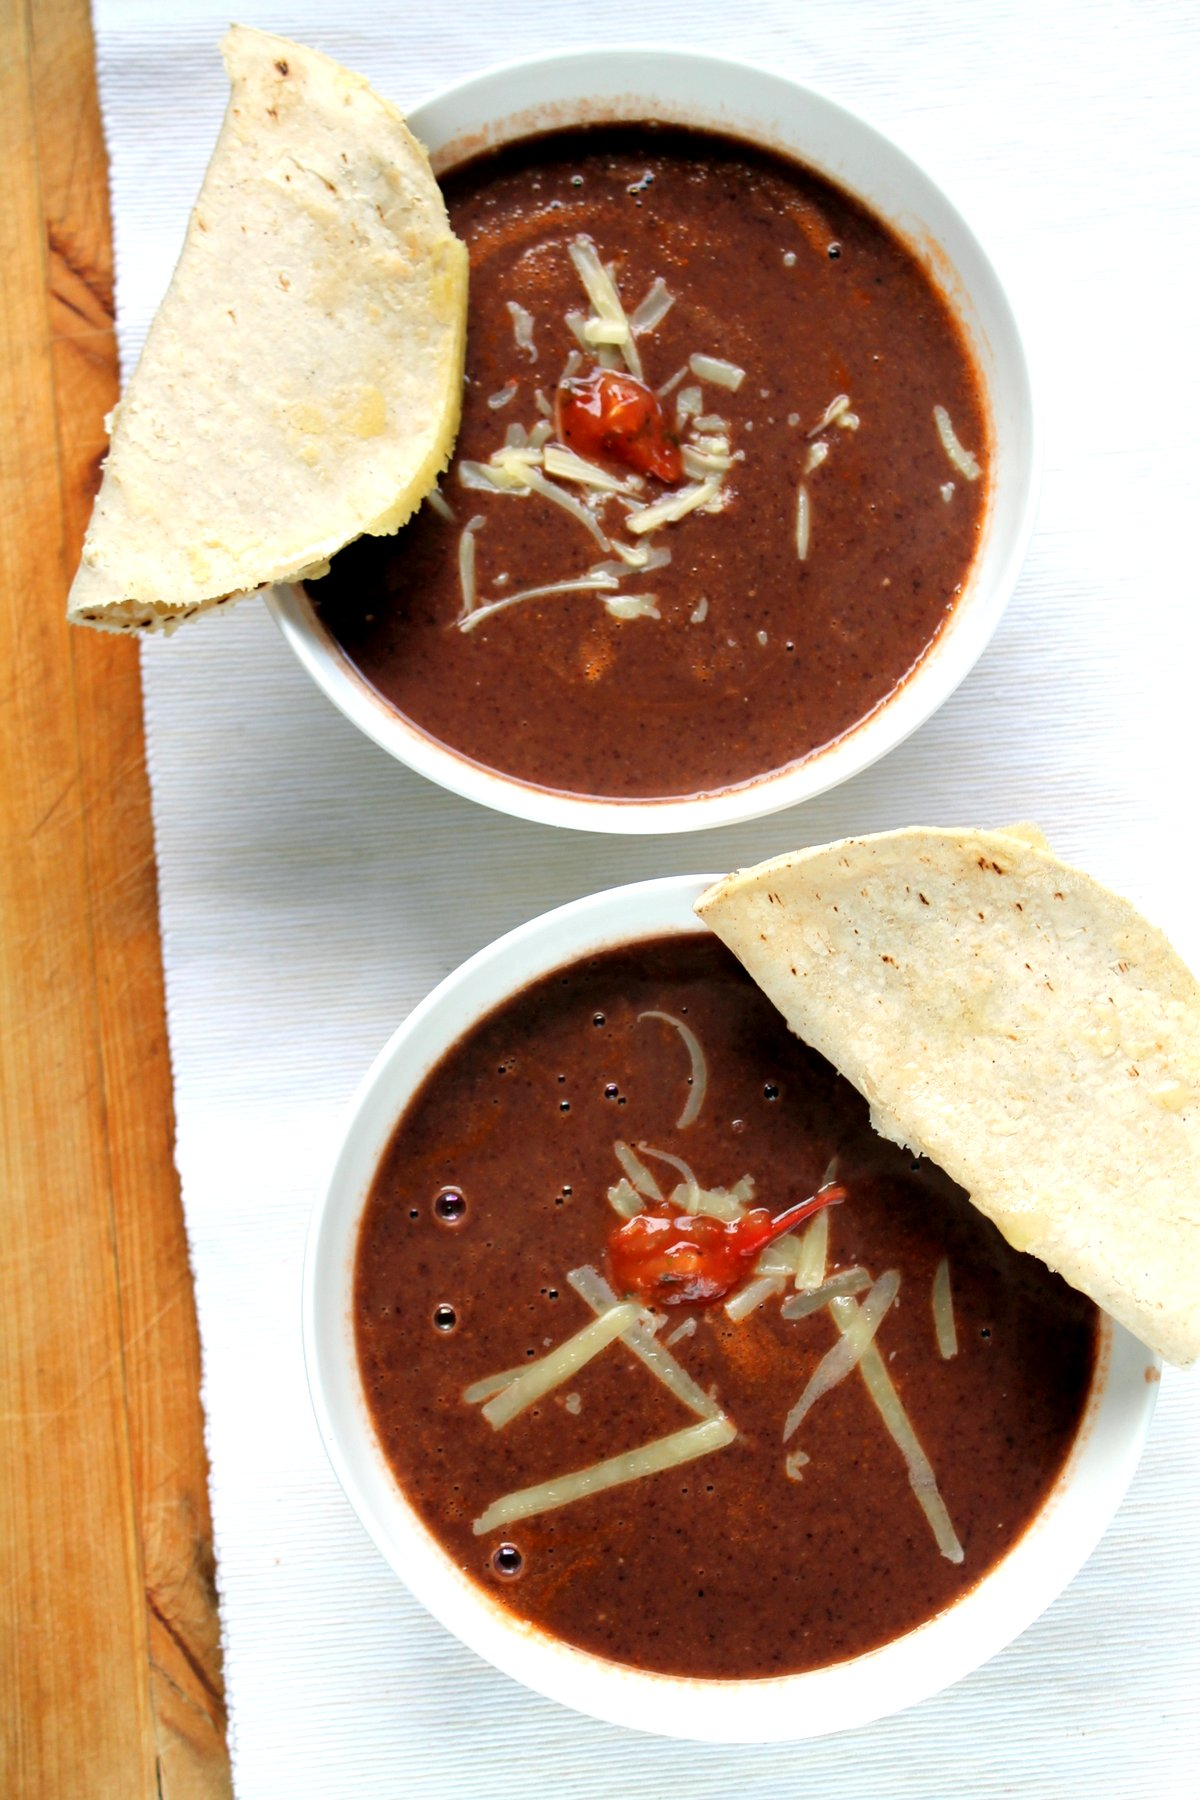 A 5 ingredient, 15 minute dinner! This is the easiest black bean soup you'll ever make, and the quick quesadilla dippers come together while it heats up. You just can't go wrong with this easy, healthy dinner!